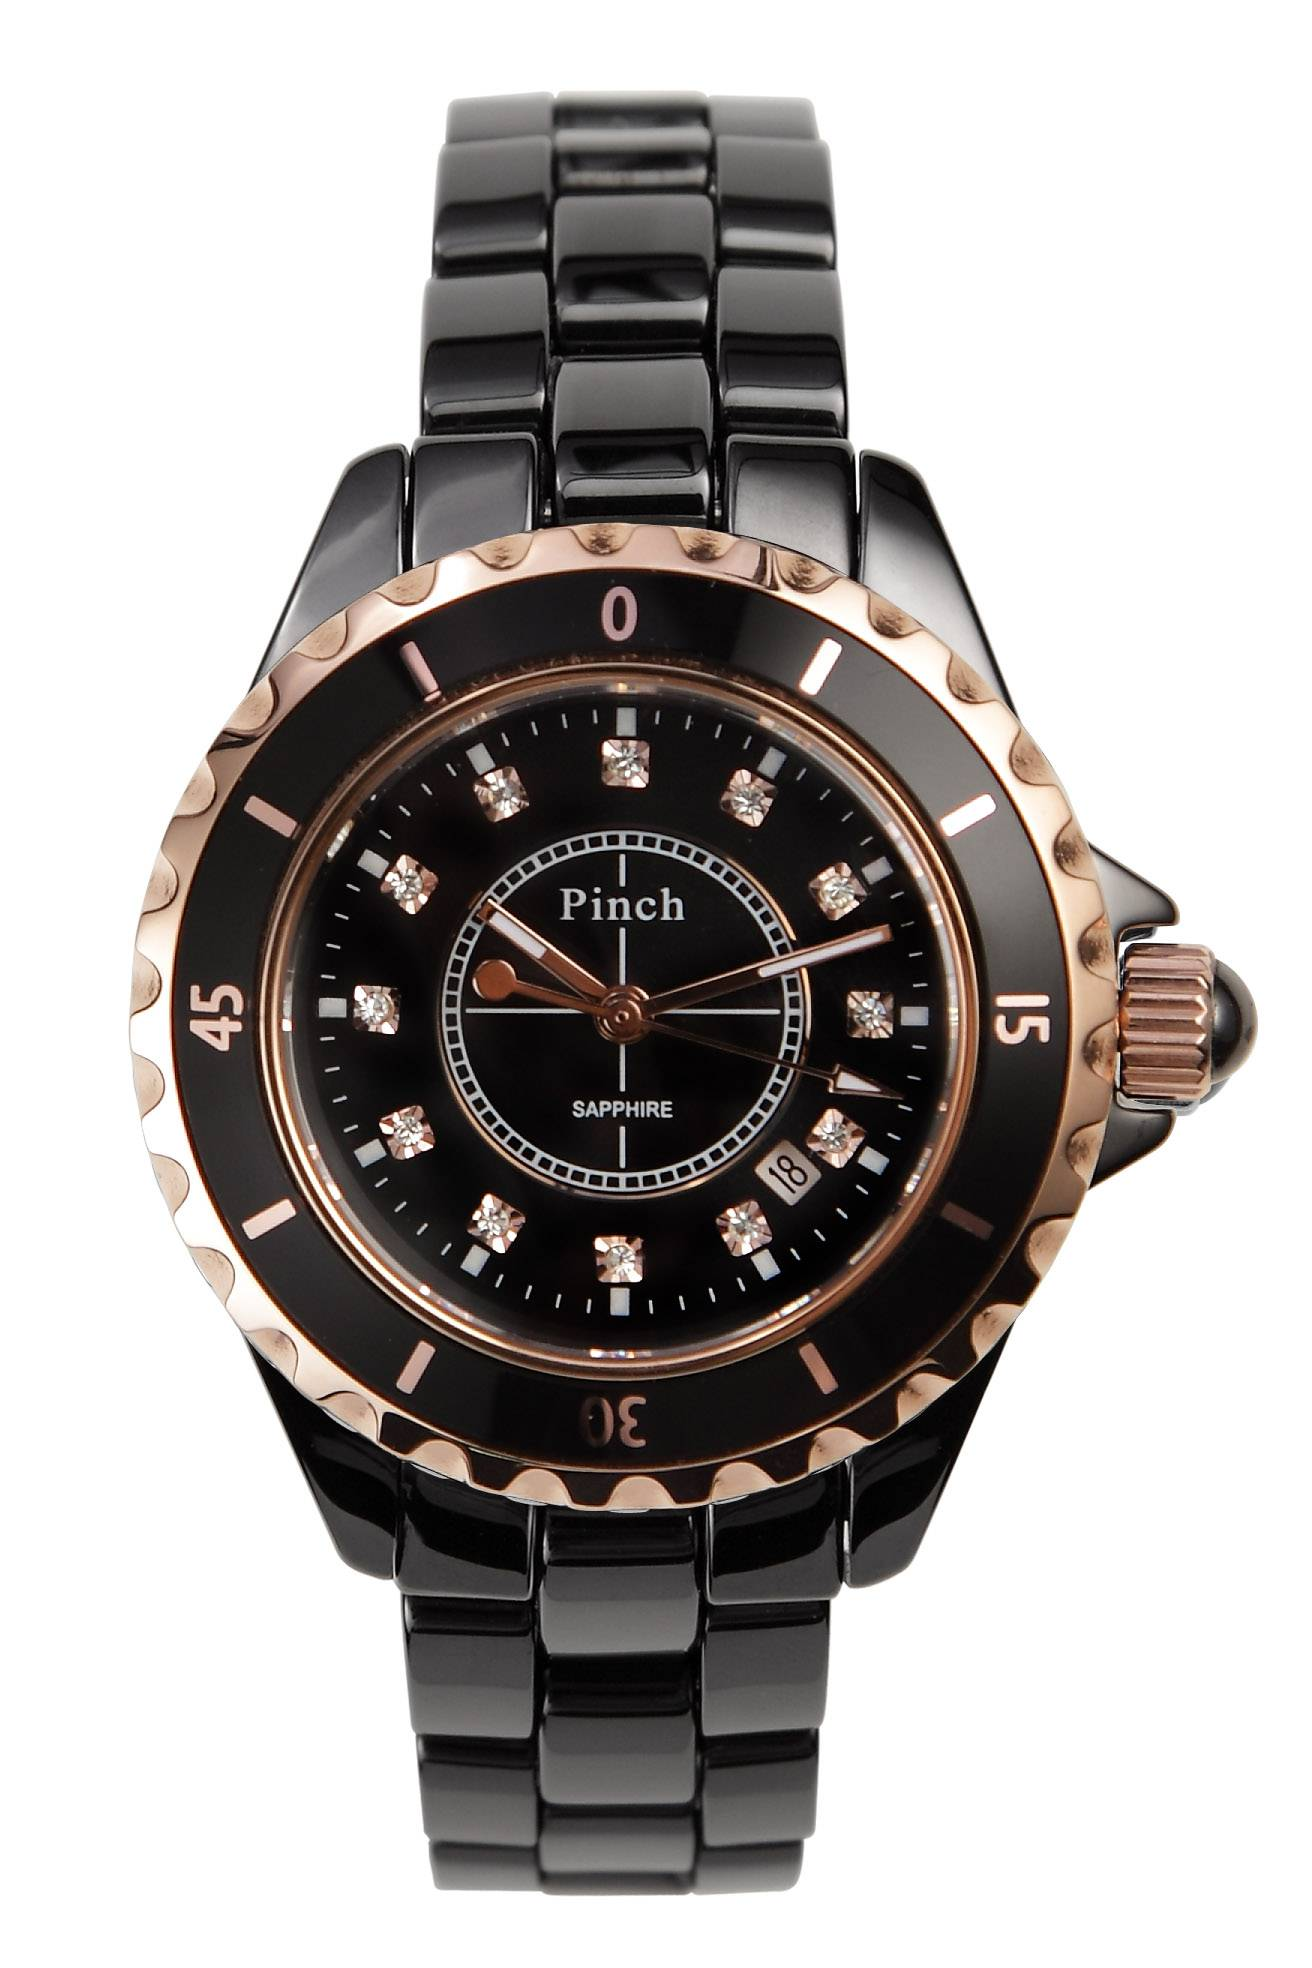 wholesale name brand watch